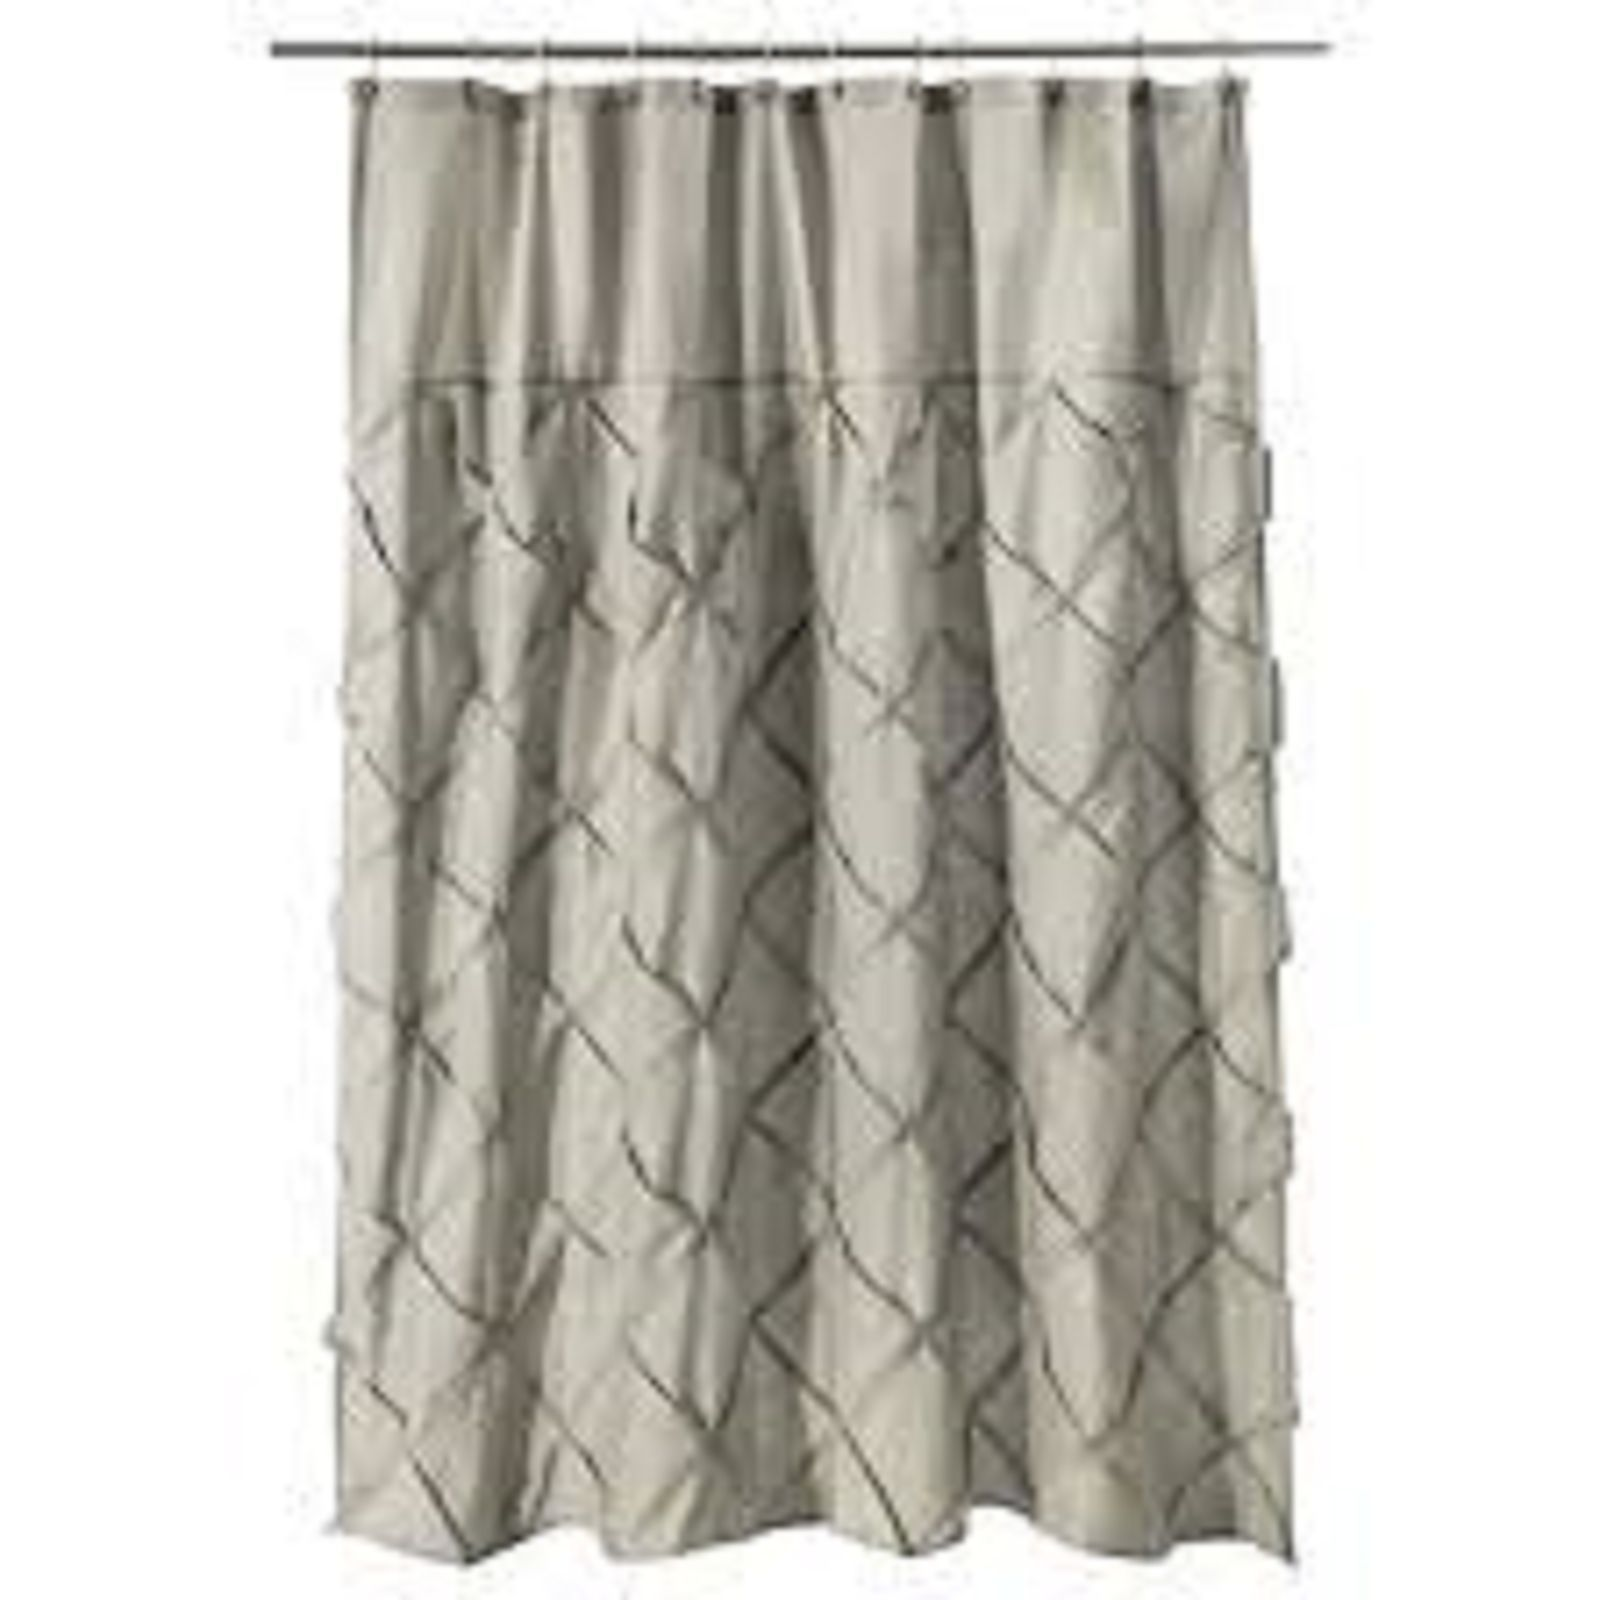 Threshold WHITE Pintuck Shower Curtain New not in package